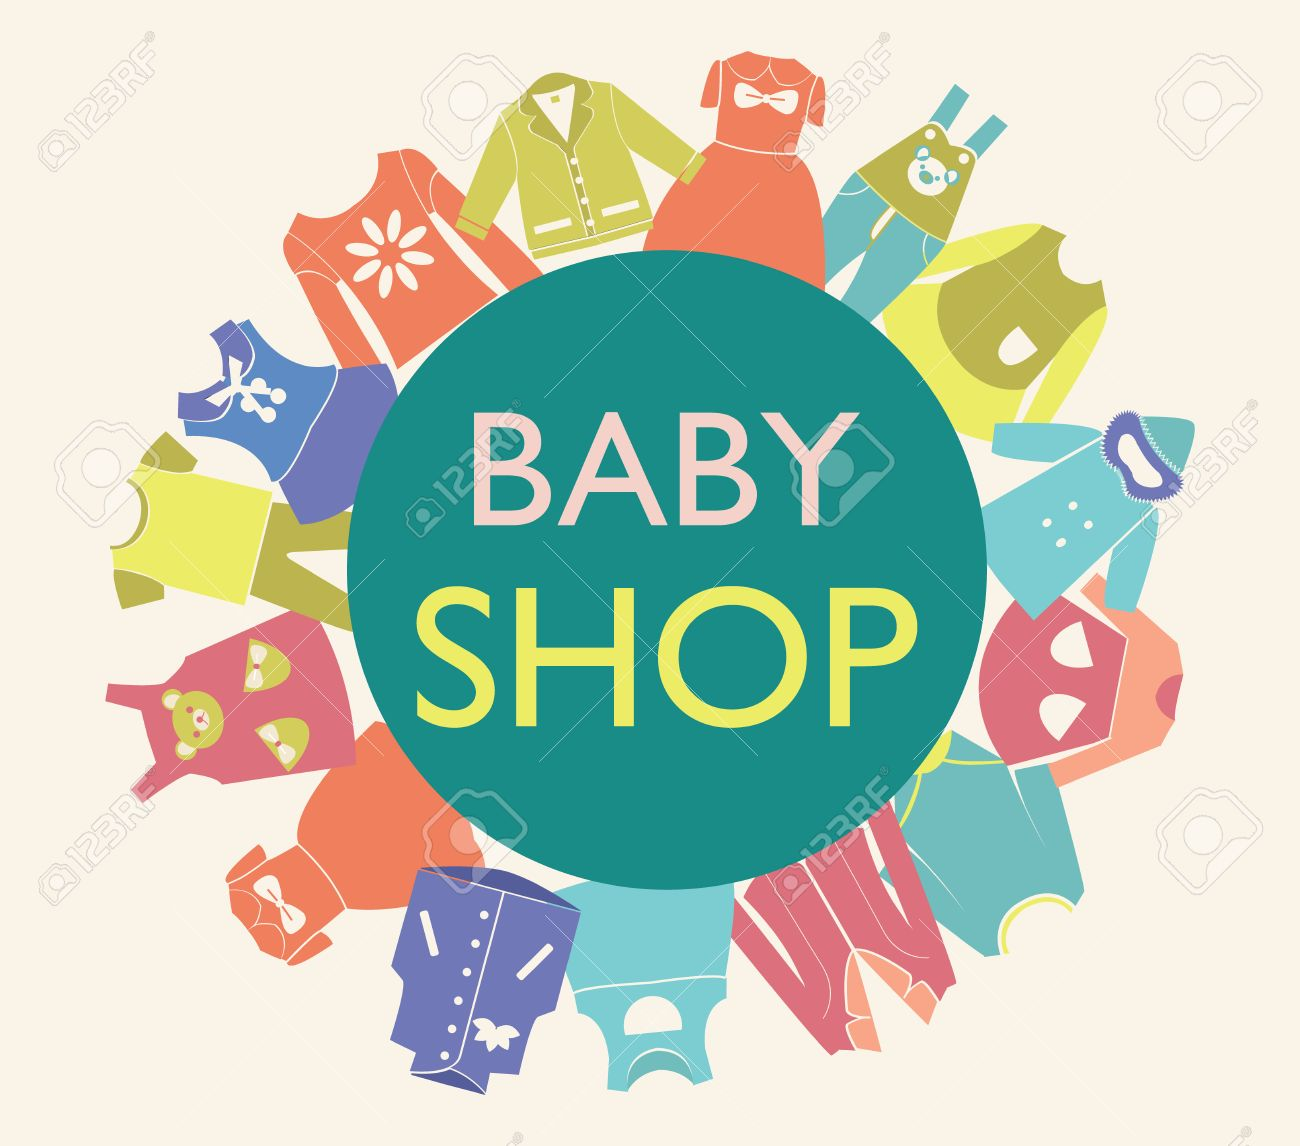 Vector   Vector Background For Baby Shop, Collection Of Baby And Children  Fashion Clothes Collection.